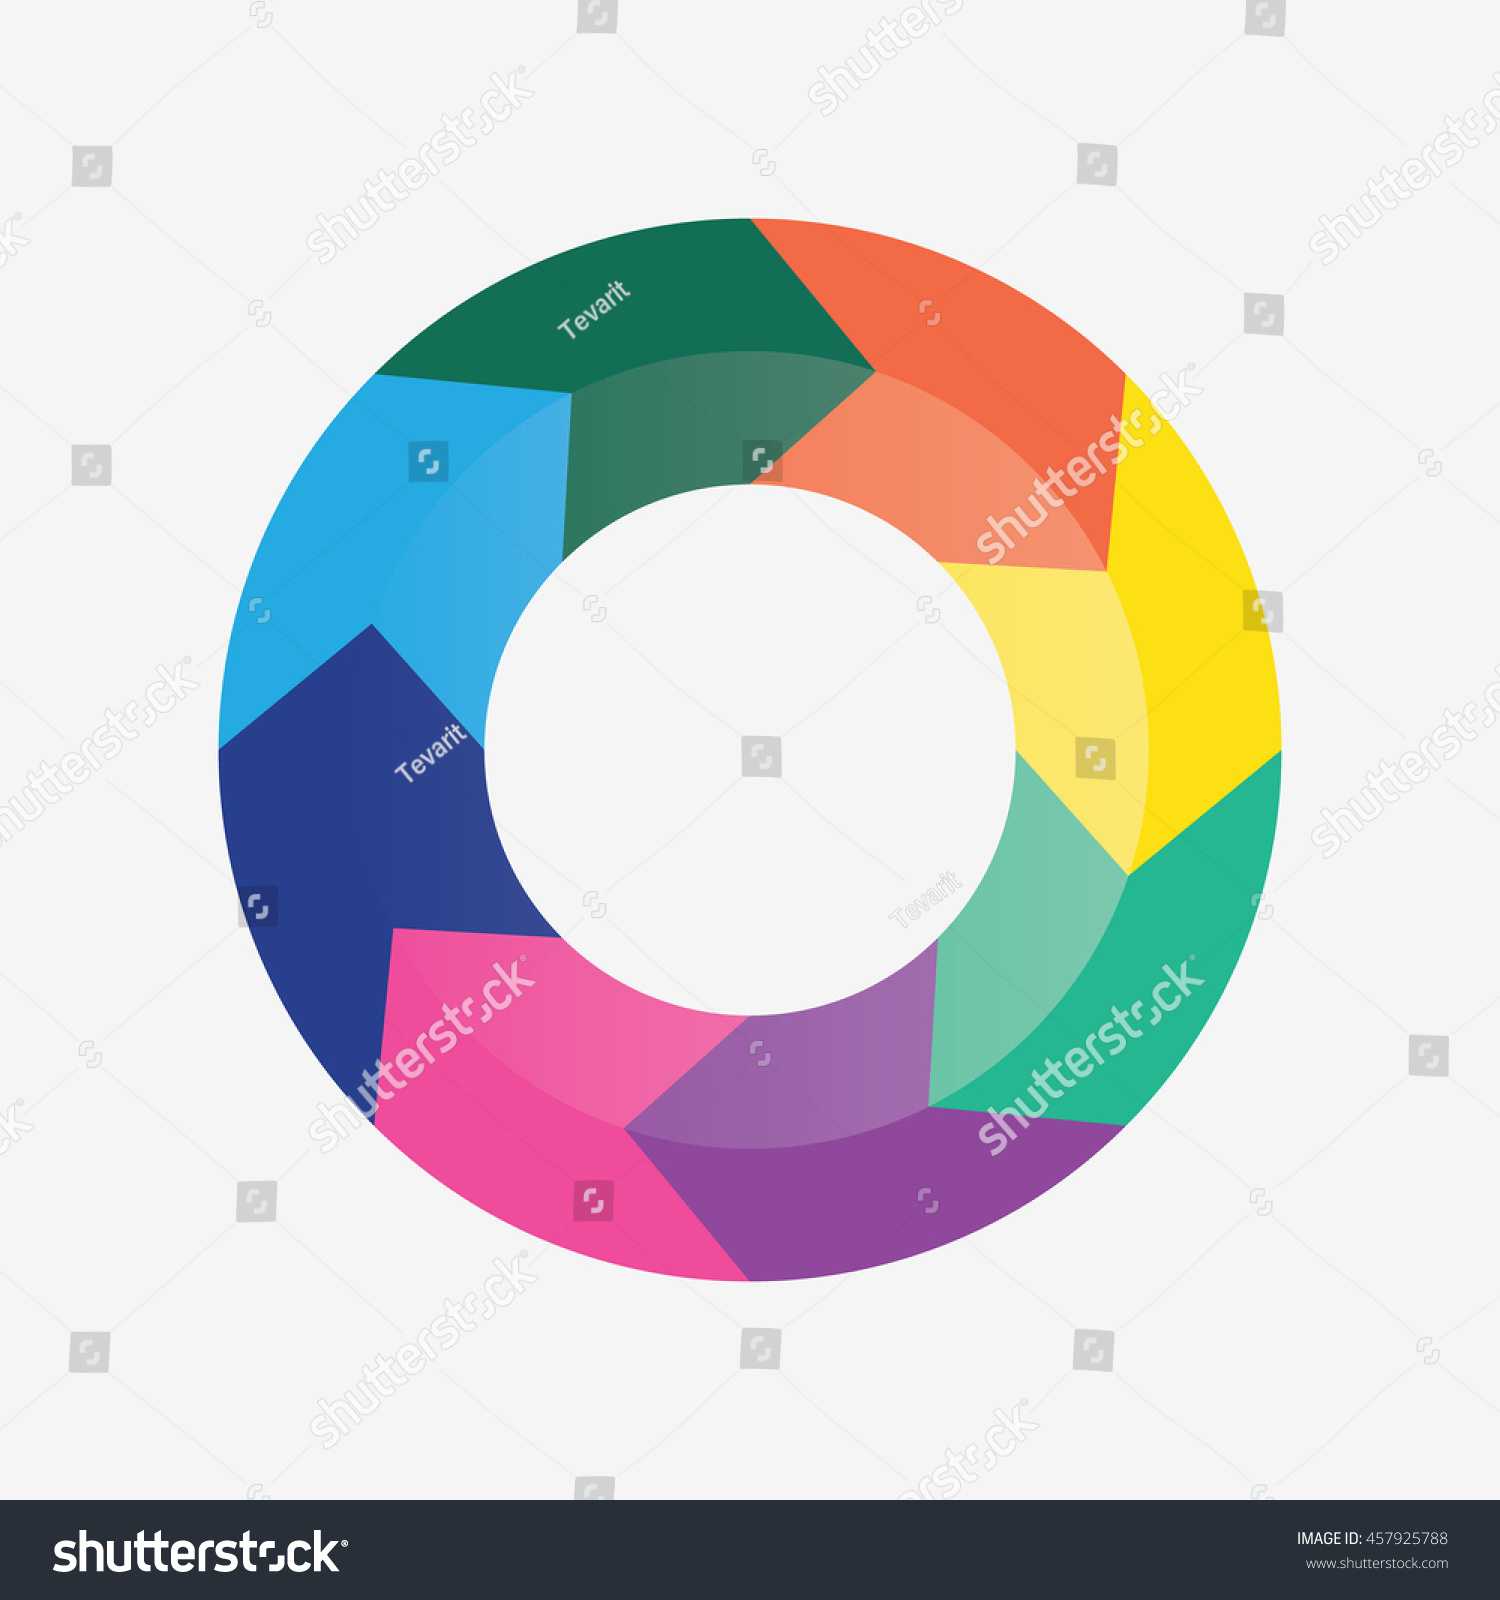 Info template pie charts 8 steps stock vector 457925788 shutterstock info template pie charts with 8 steps nvjuhfo Image collections